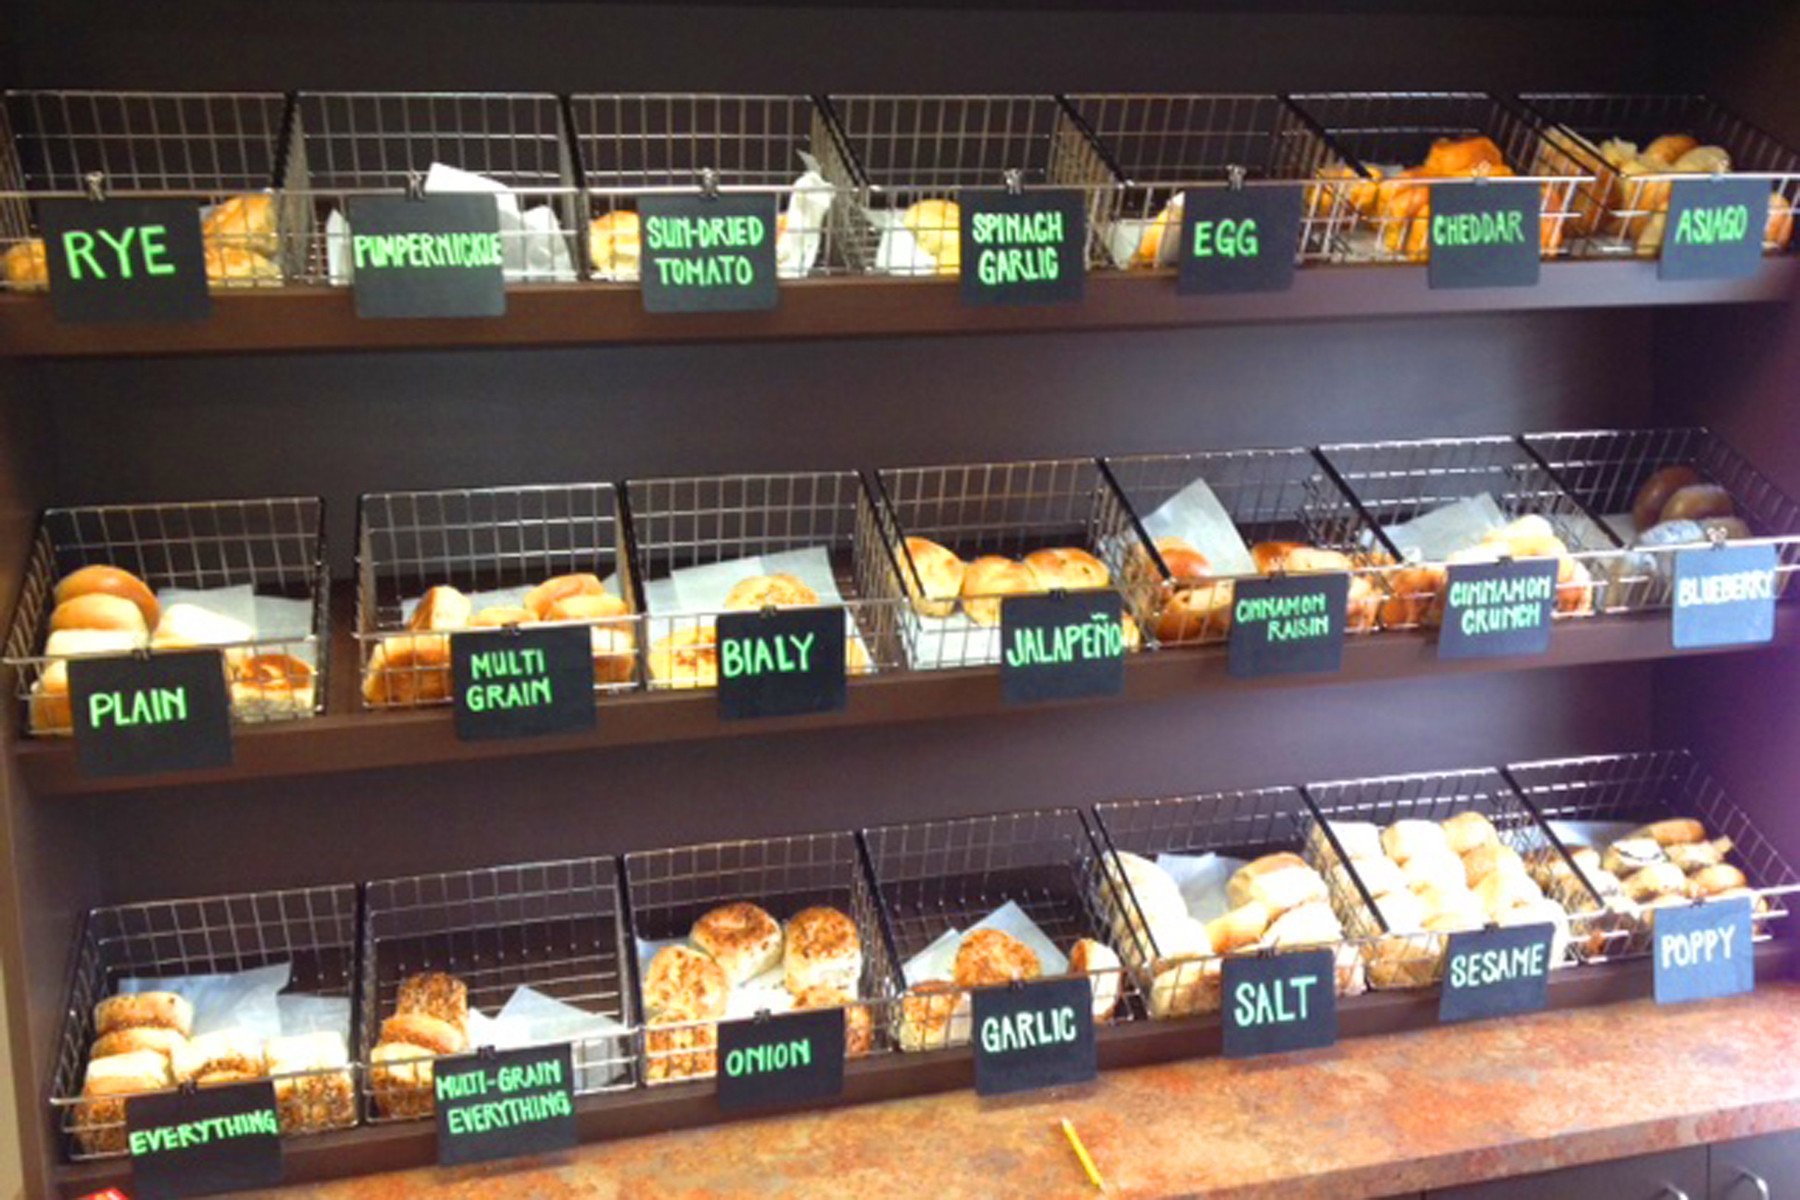 When fully stocked (early in the day), there are upwards of 20 varieties of bagels. Come later in the day and you risk a limited selection, especially on the weekend.